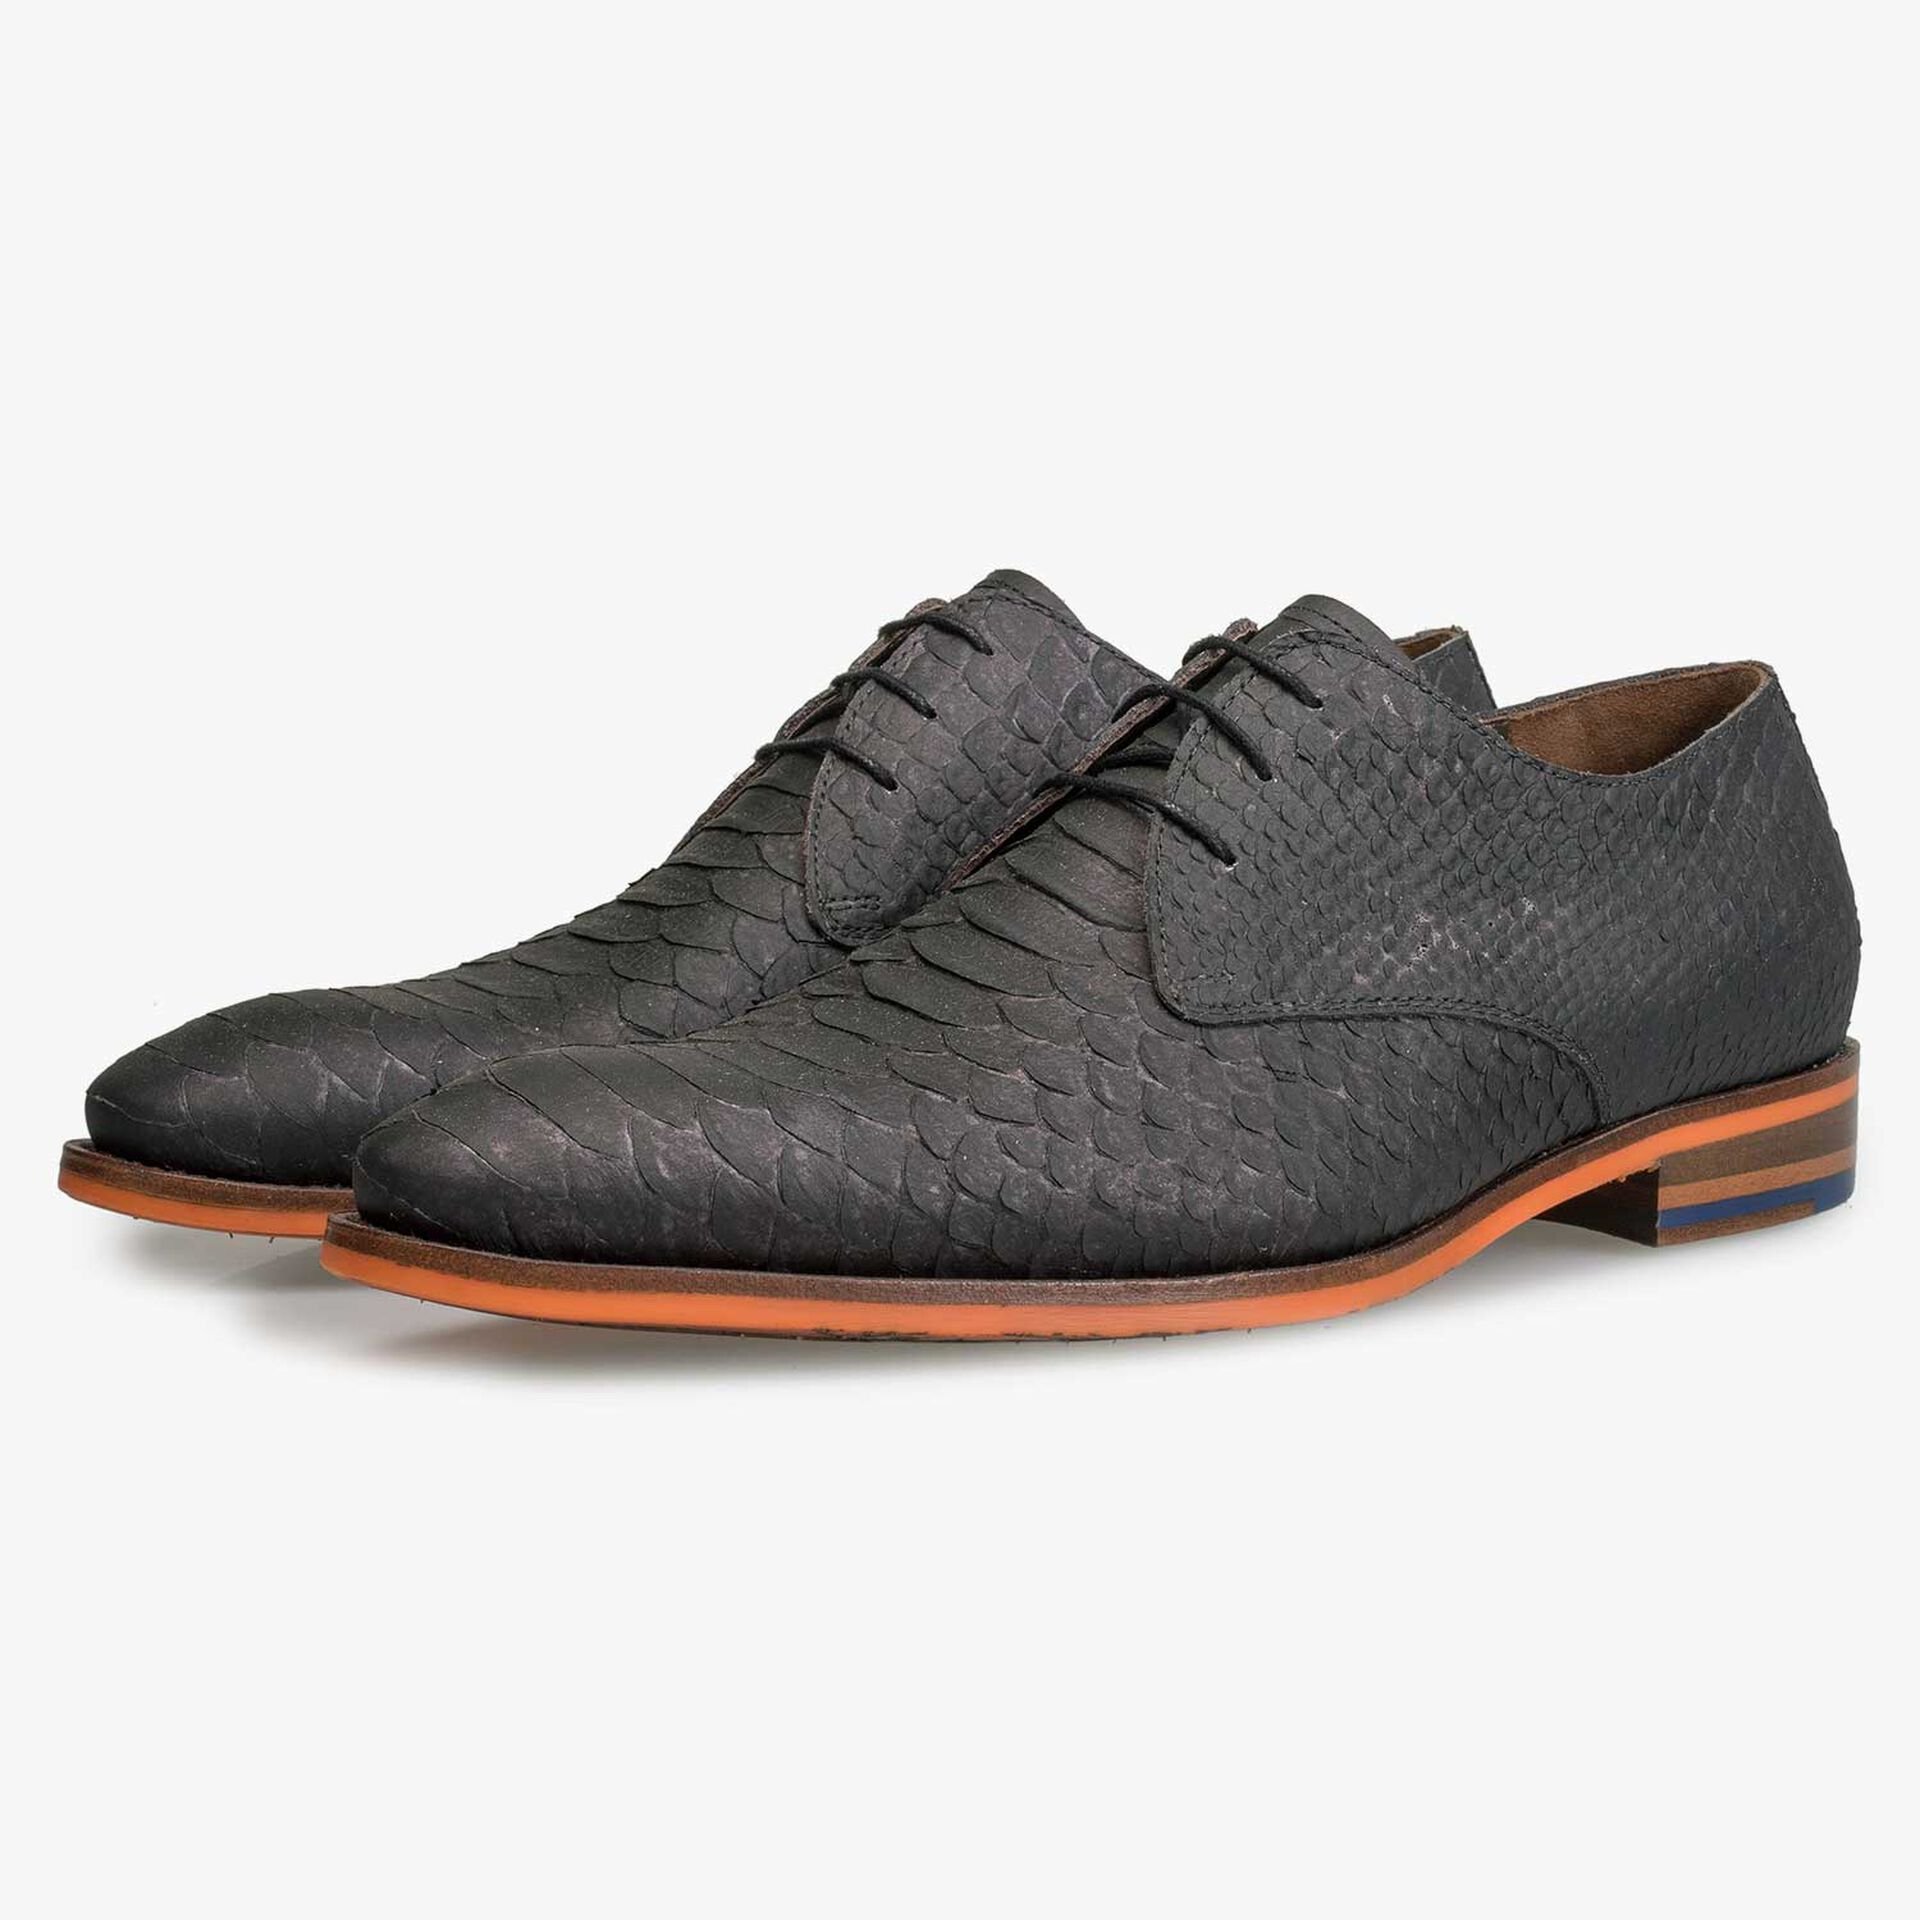 Grey calf leather lace shoe with snake print